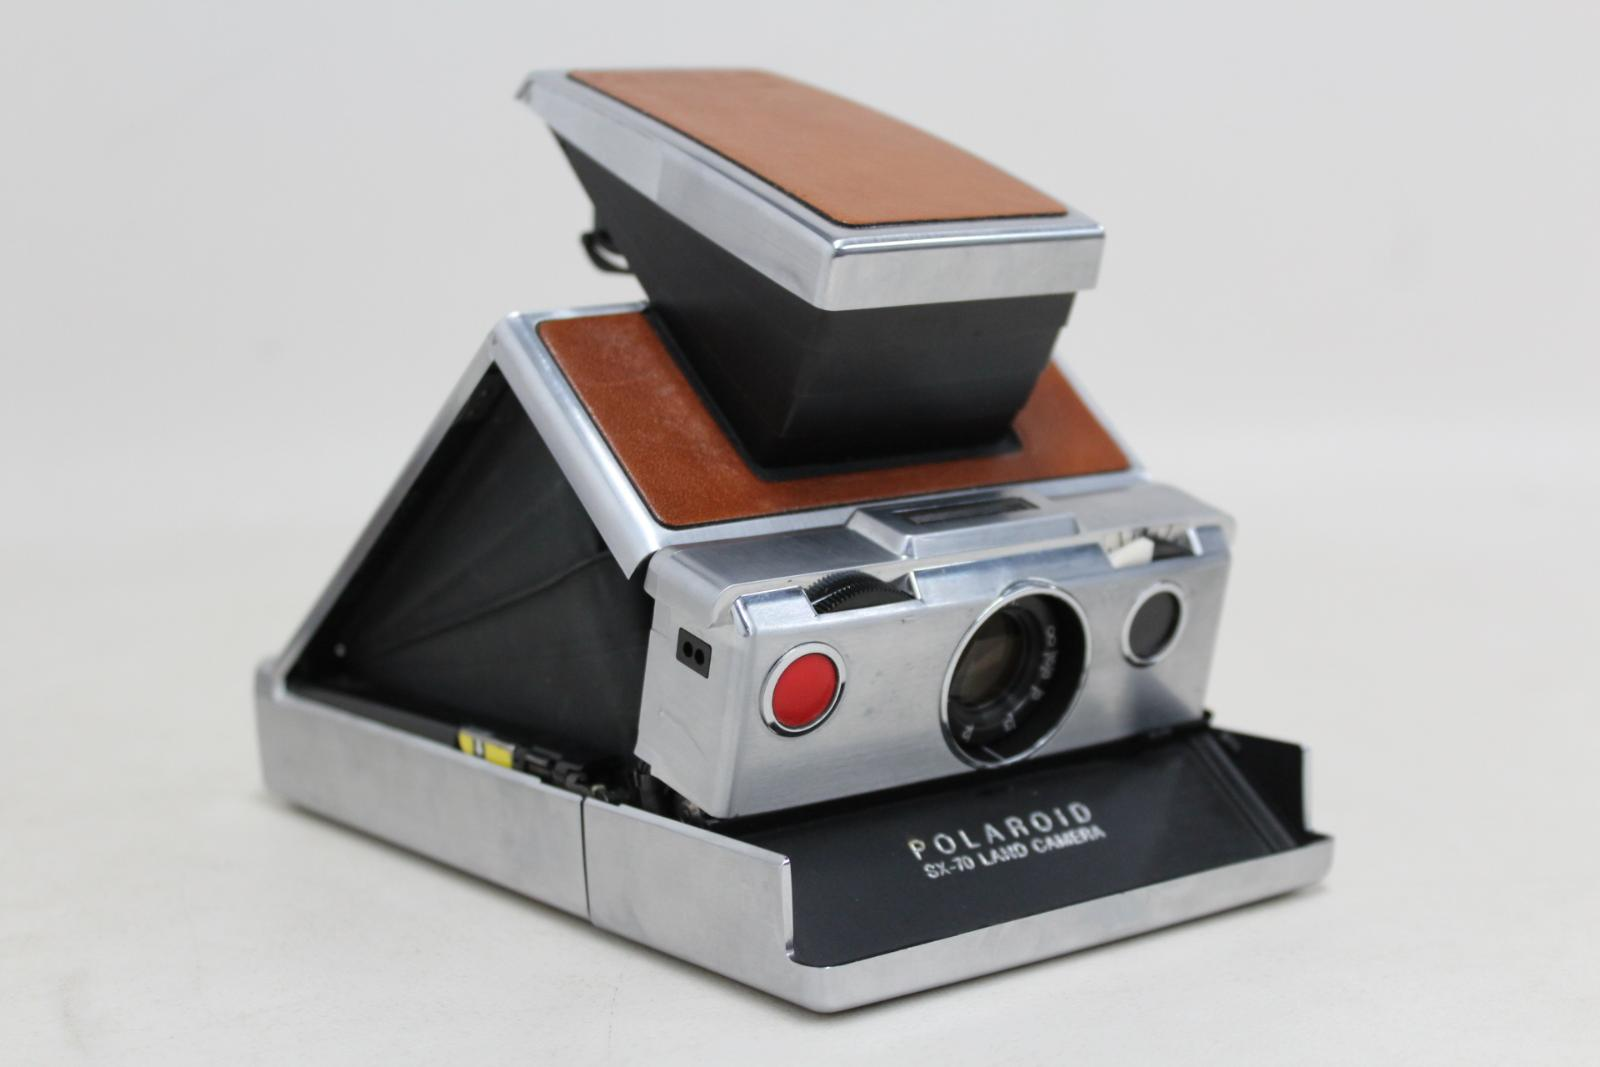 POLAROID SX-70 Land Camera Leather Body Vintage With Original Leather Bag  10 10 of 12 ... 979dbf8ecce